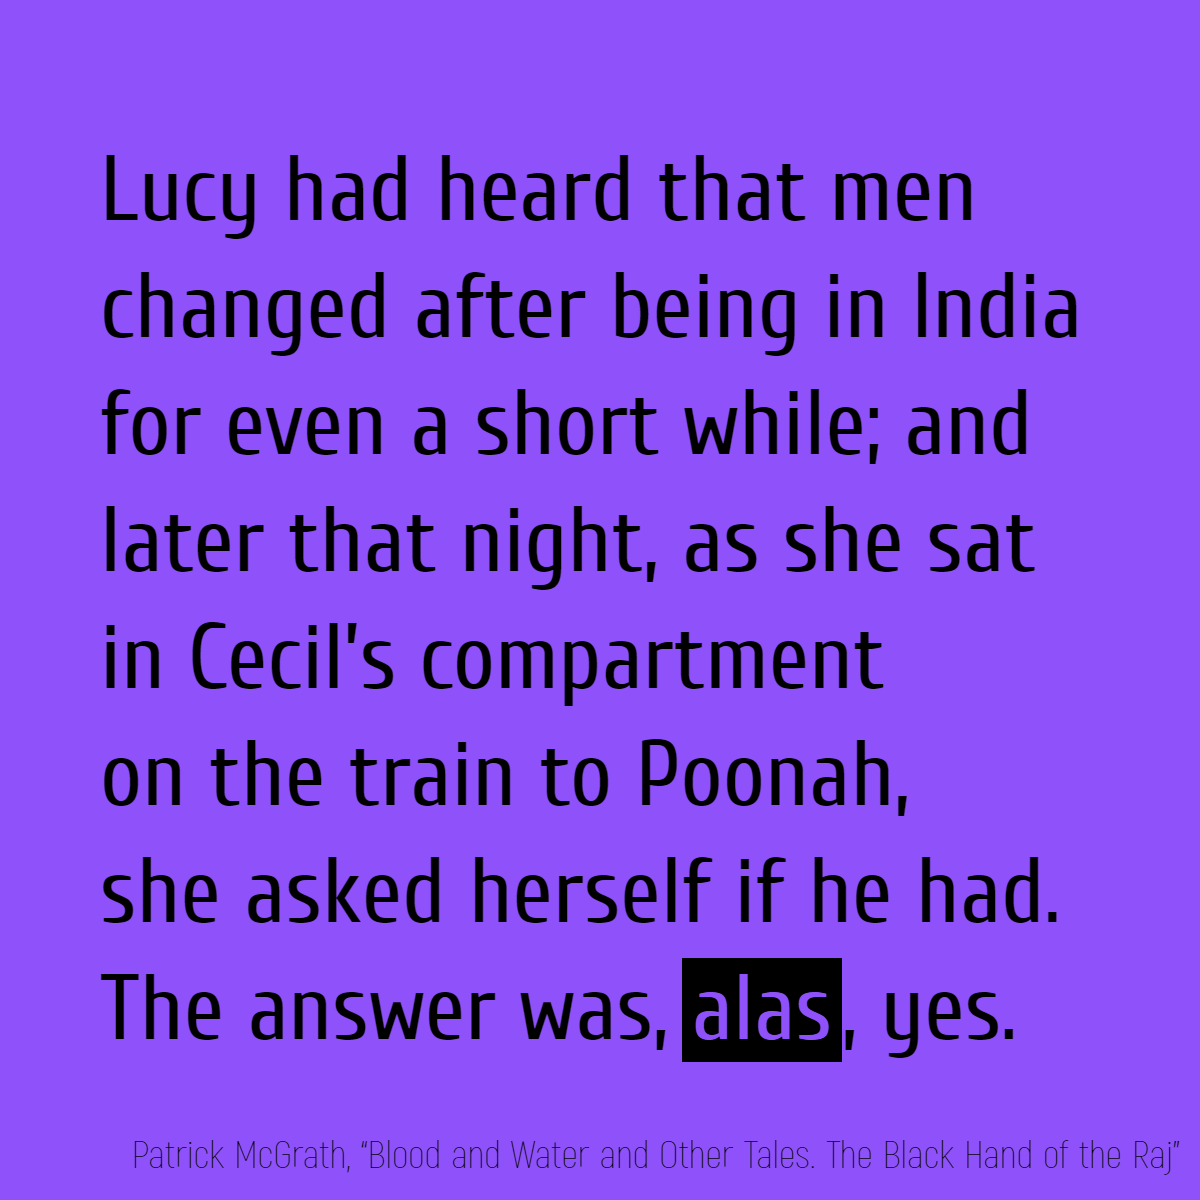 Lucy had heard that men changed after being in India for even a short while; and later that night, as she sat in Cecil's compartment on the train to Poonah, she asked herself if he had. The answer was, **alas**, yes.